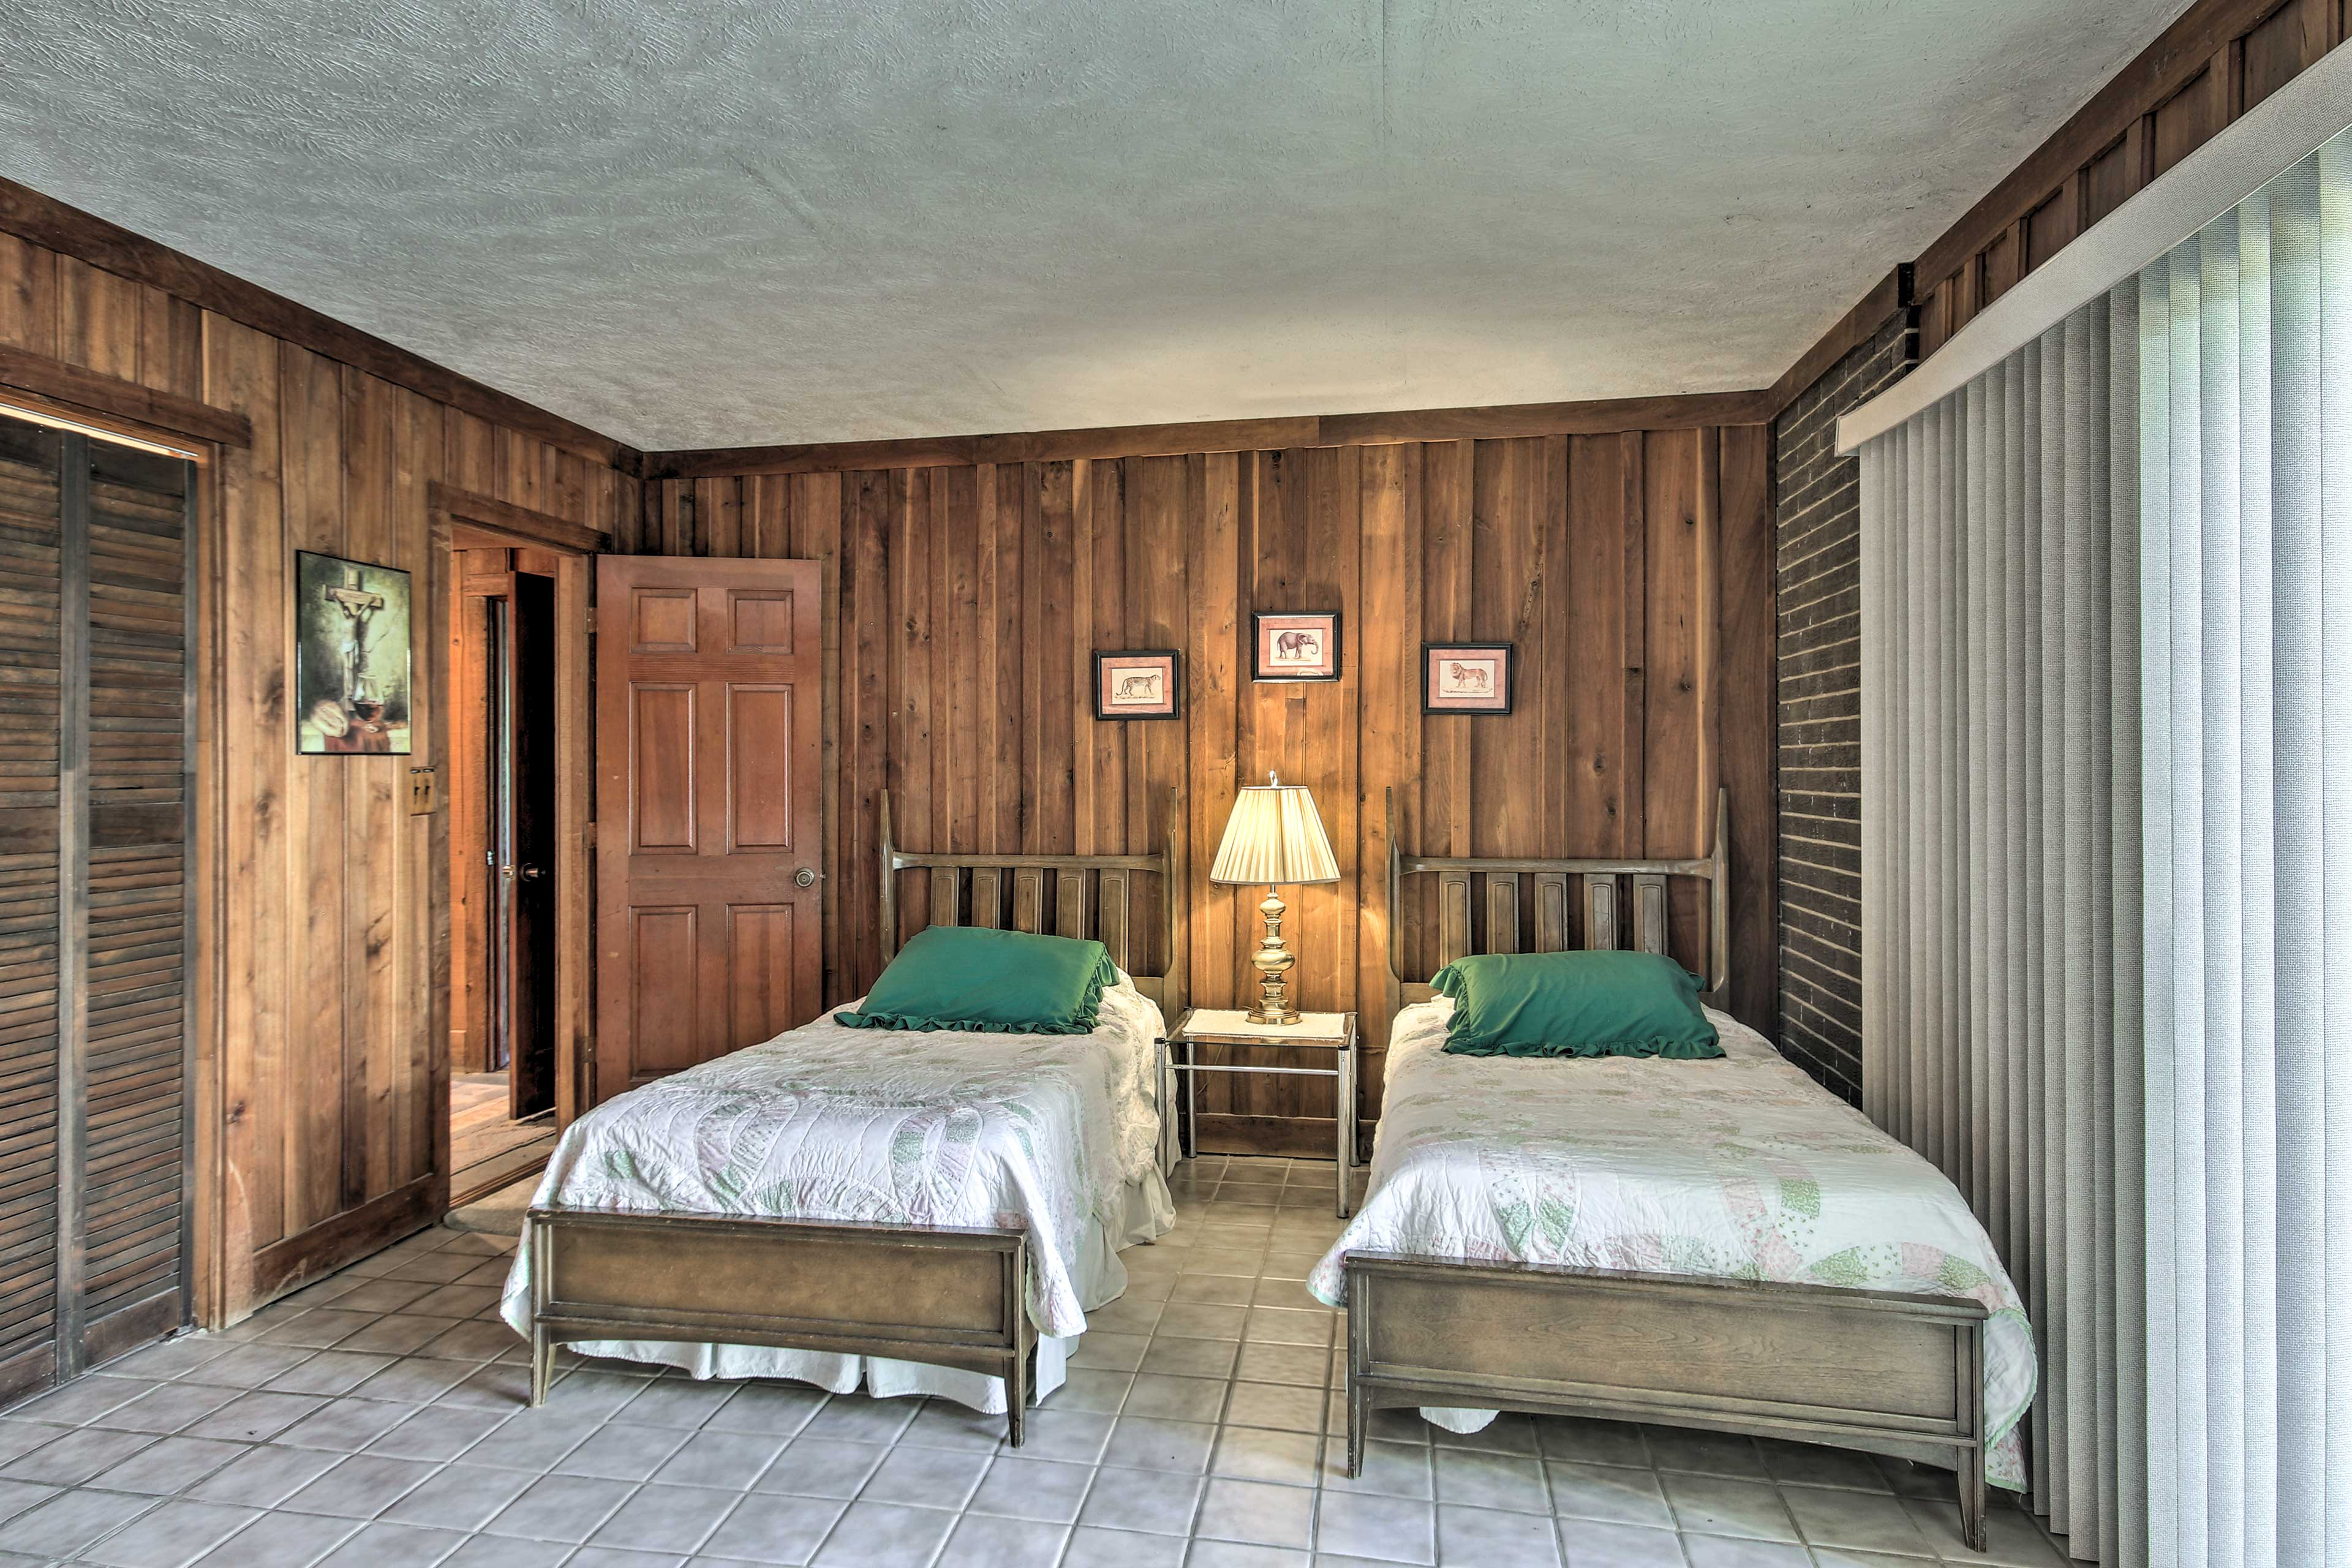 Kids will love this room with 2 twin beds.